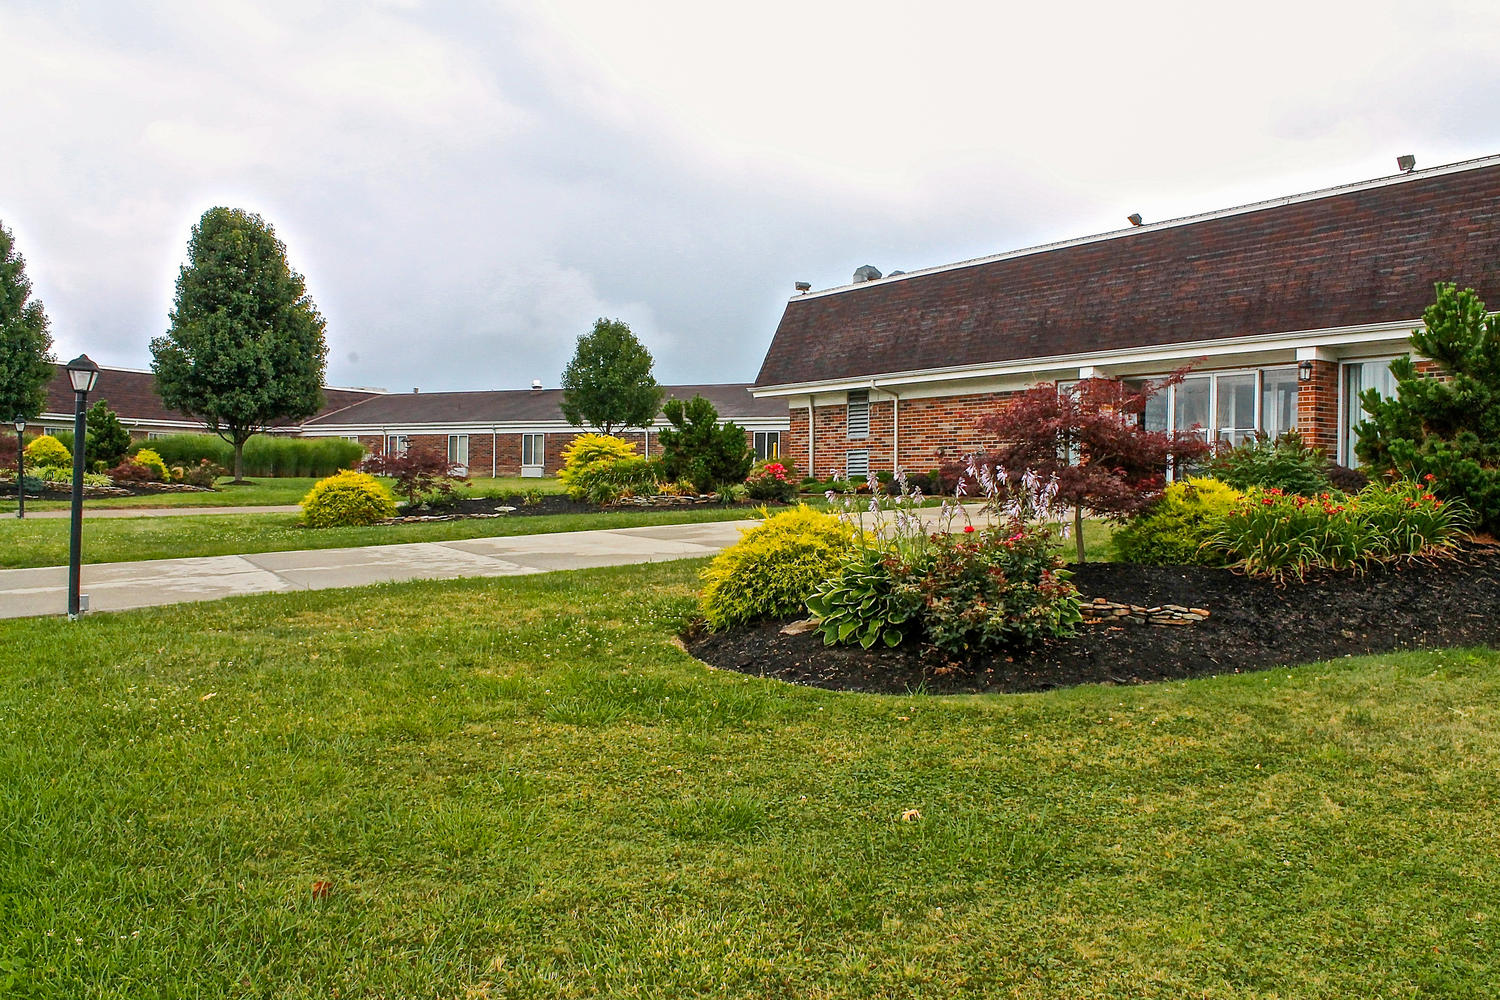 Exterior view of Stonerise Beckley building with colorful landscaping and green lawn